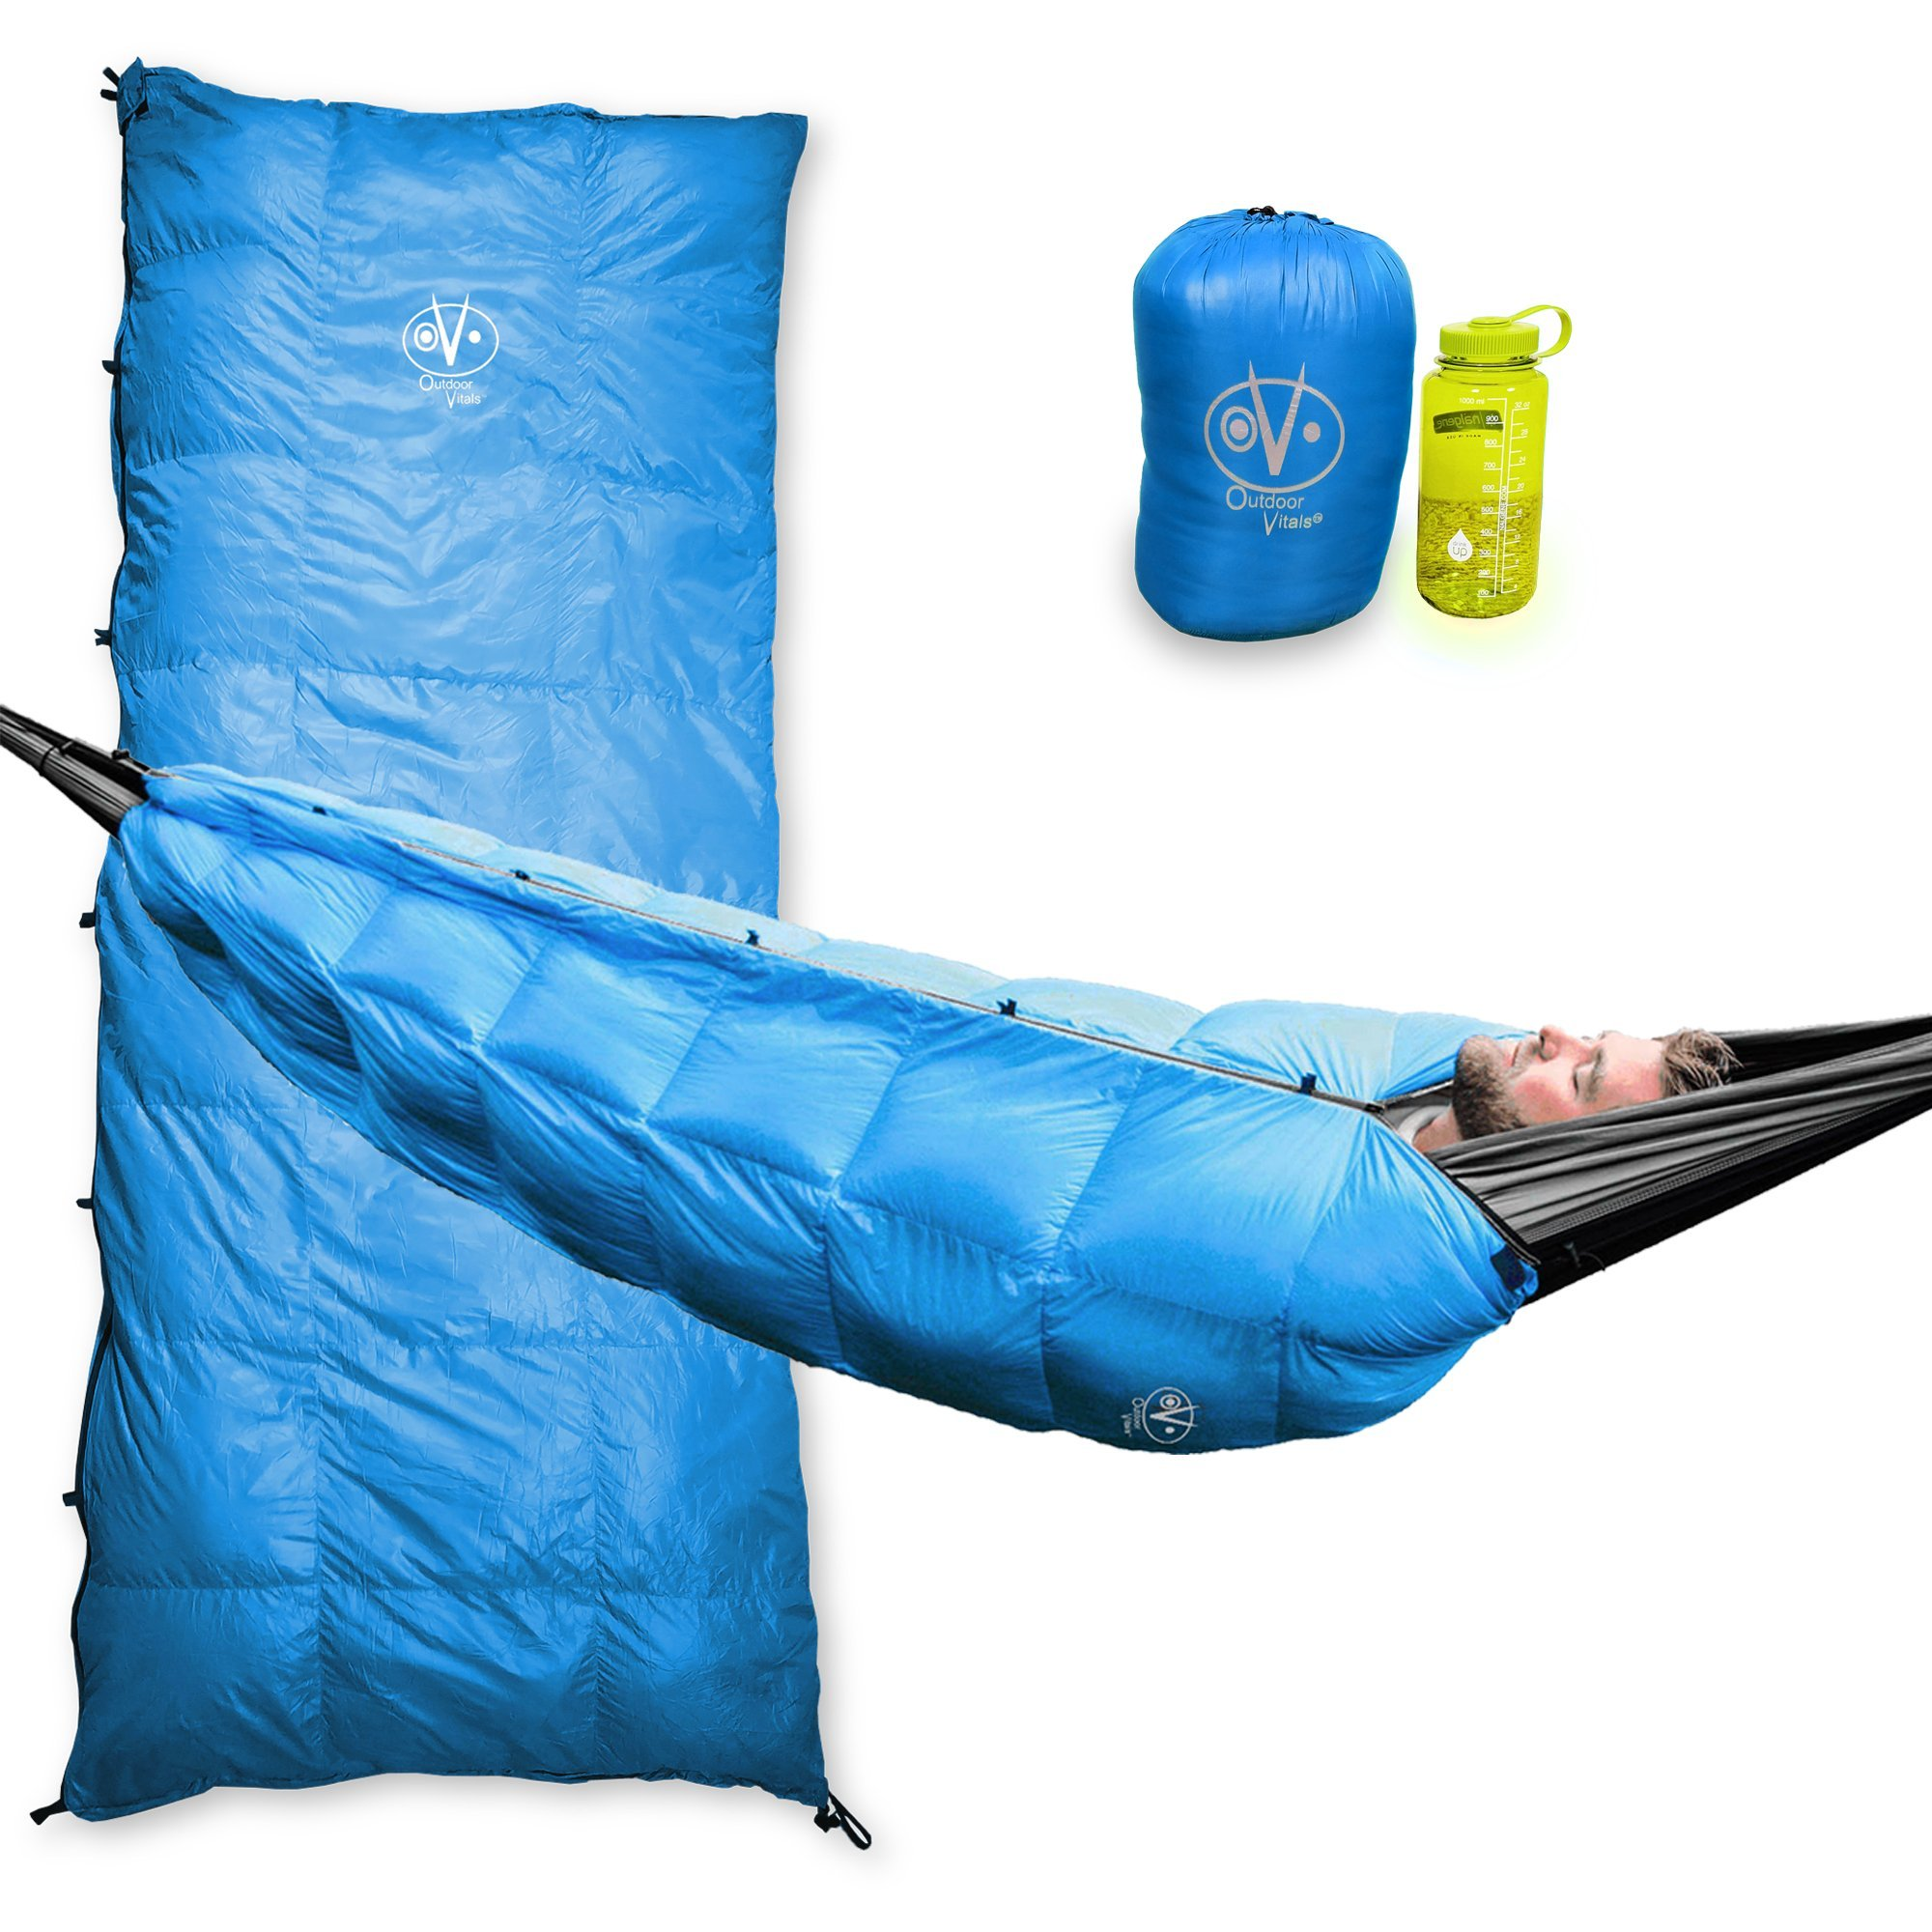 Outdoor Vitals Aerie 30°F Down Underquilt / Sleeping Bag